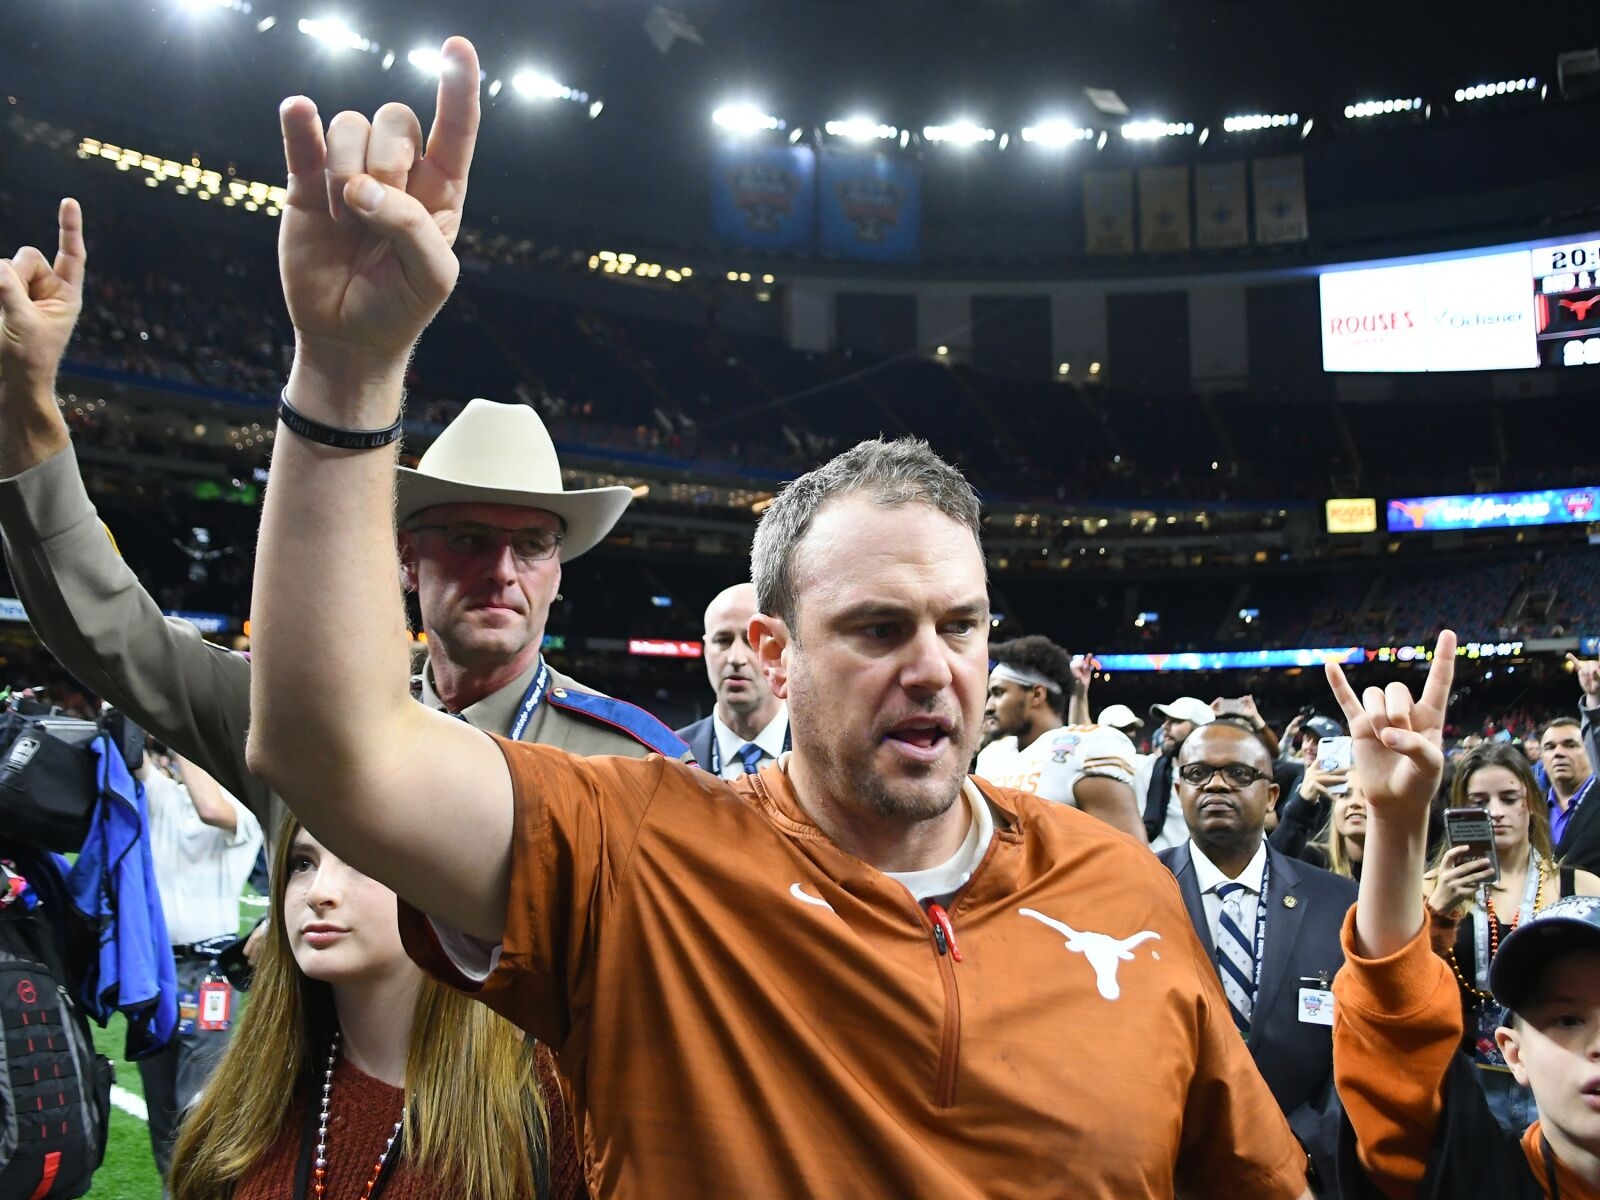 Texas A&M Football: When will we see series with UT?